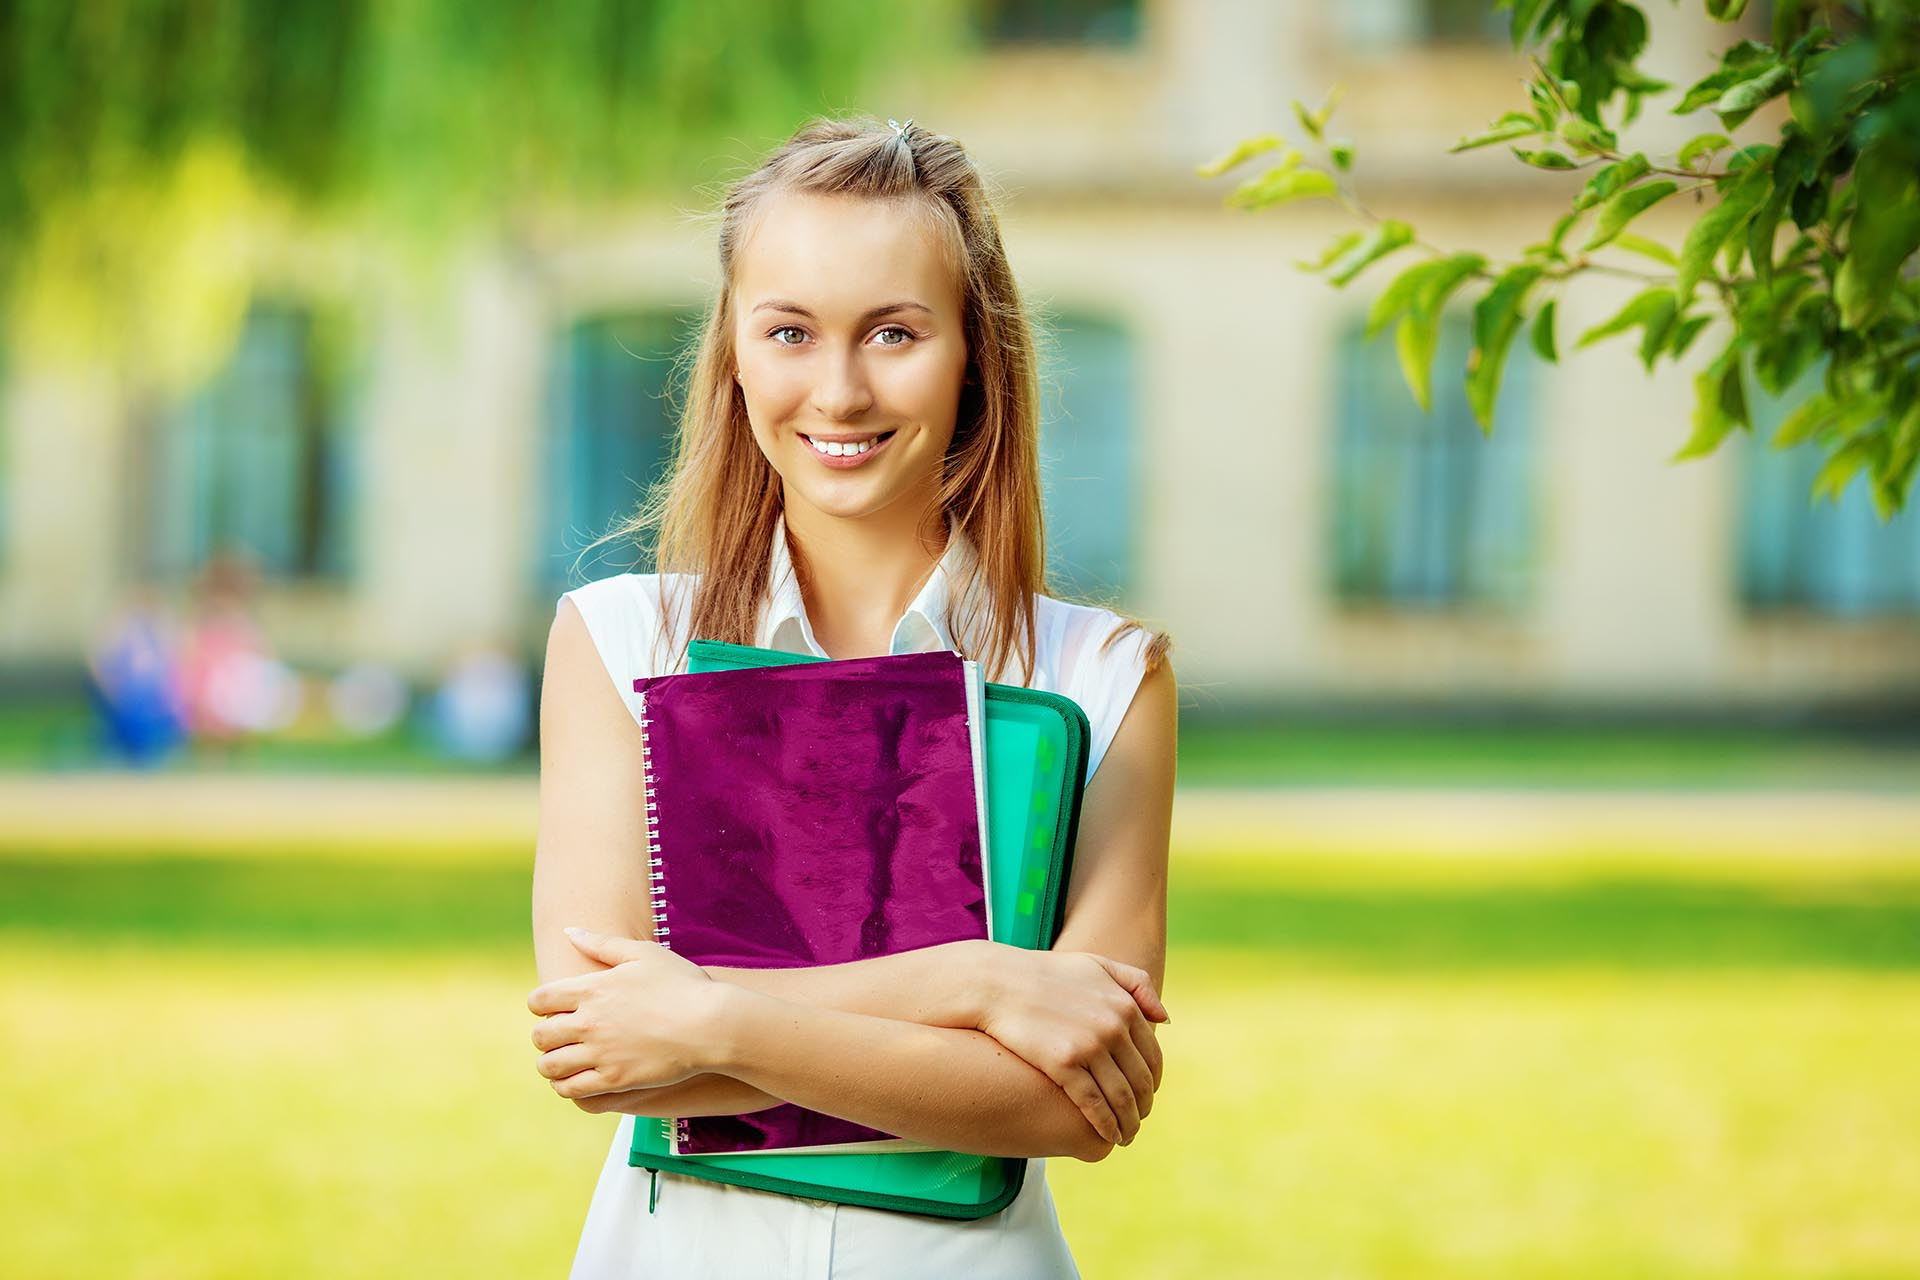 Student woman is standing with the folder and copy-book on the university campus background. Happy smart young woman is going to study outdoors in the park.